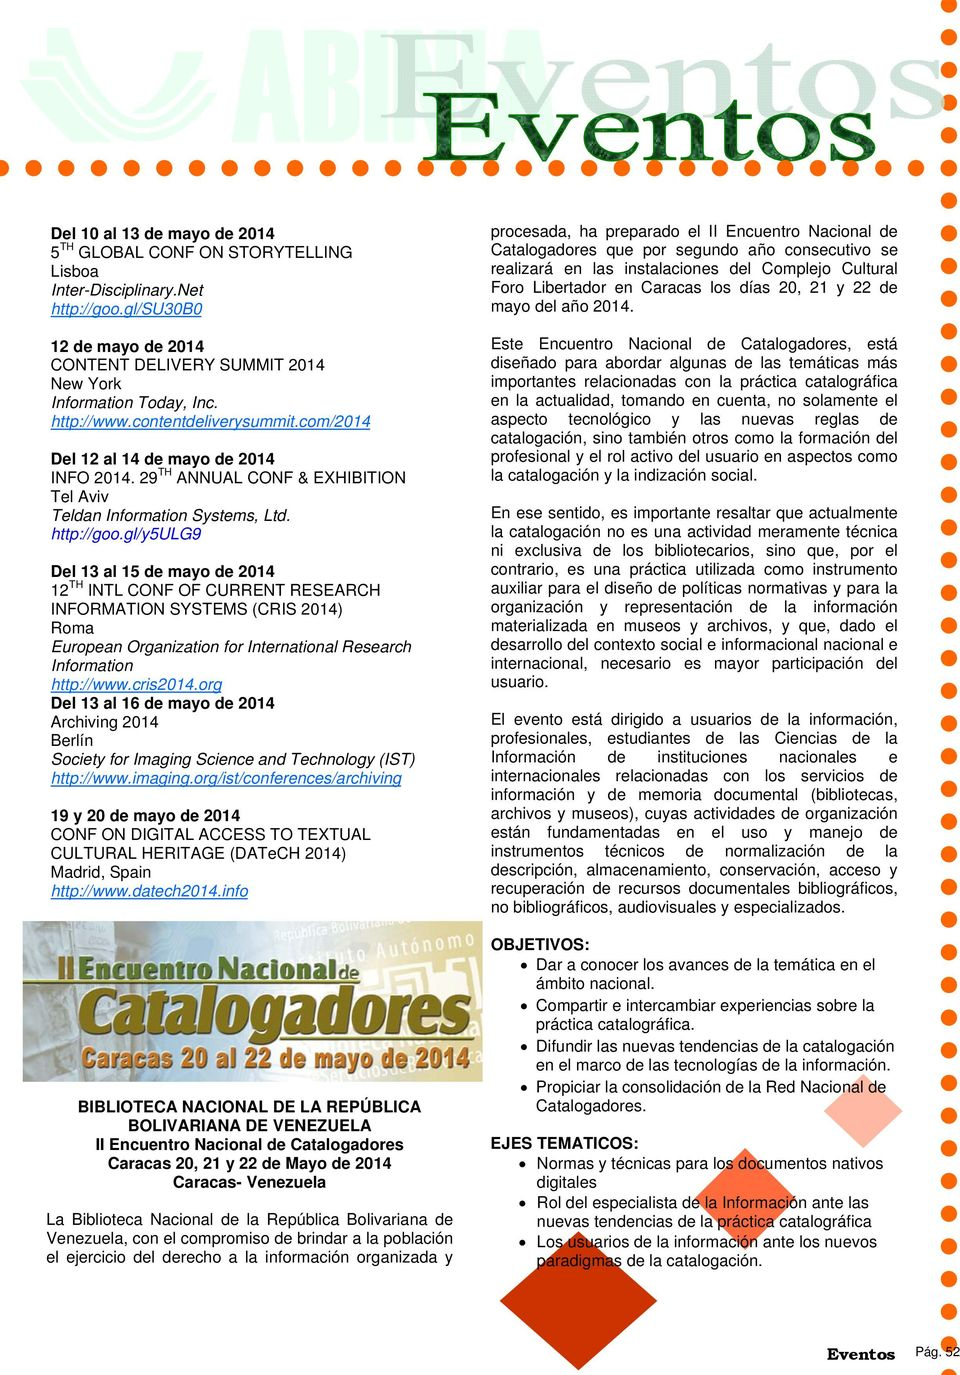 gl/y5ulg9 Del 13 al 15 de mayo de 2014 12 TH INTL CONF OF CURRENT RESEARCH INFORMATION SYSTEMS (CRIS 2014) Roma European Organization for International Research Information http://www.cris2014.